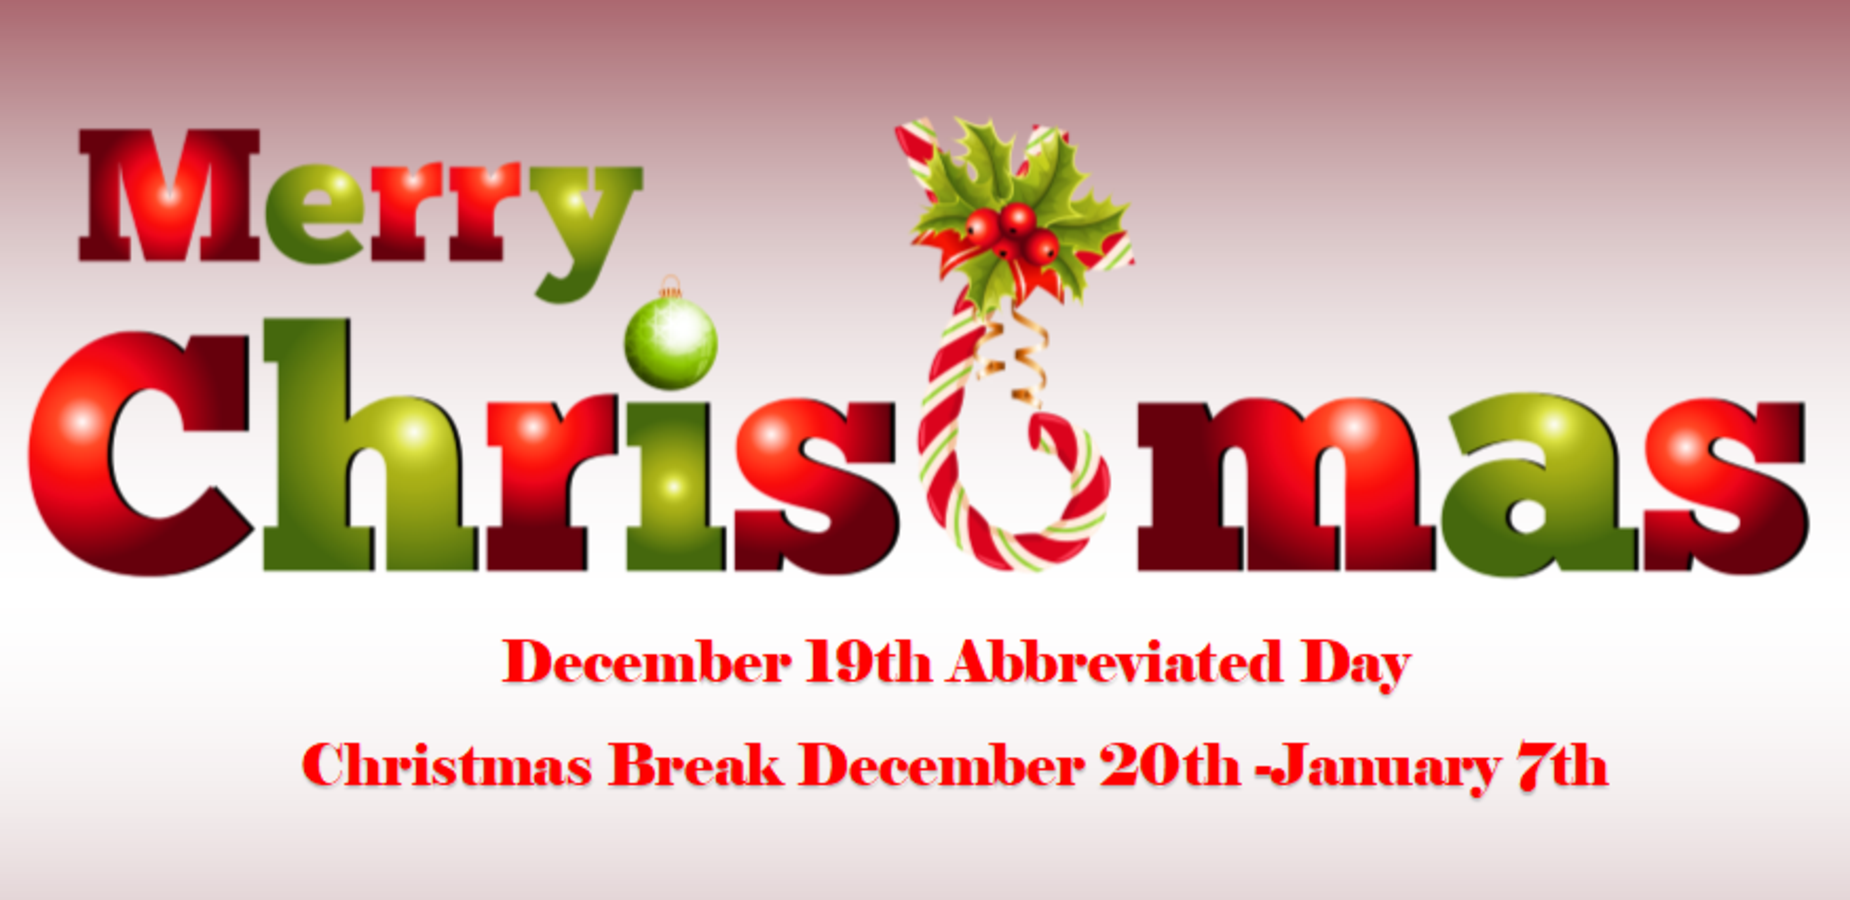 Merry Christmas December 19th abbreviated day.  Christmas Break December 20th - January 7th